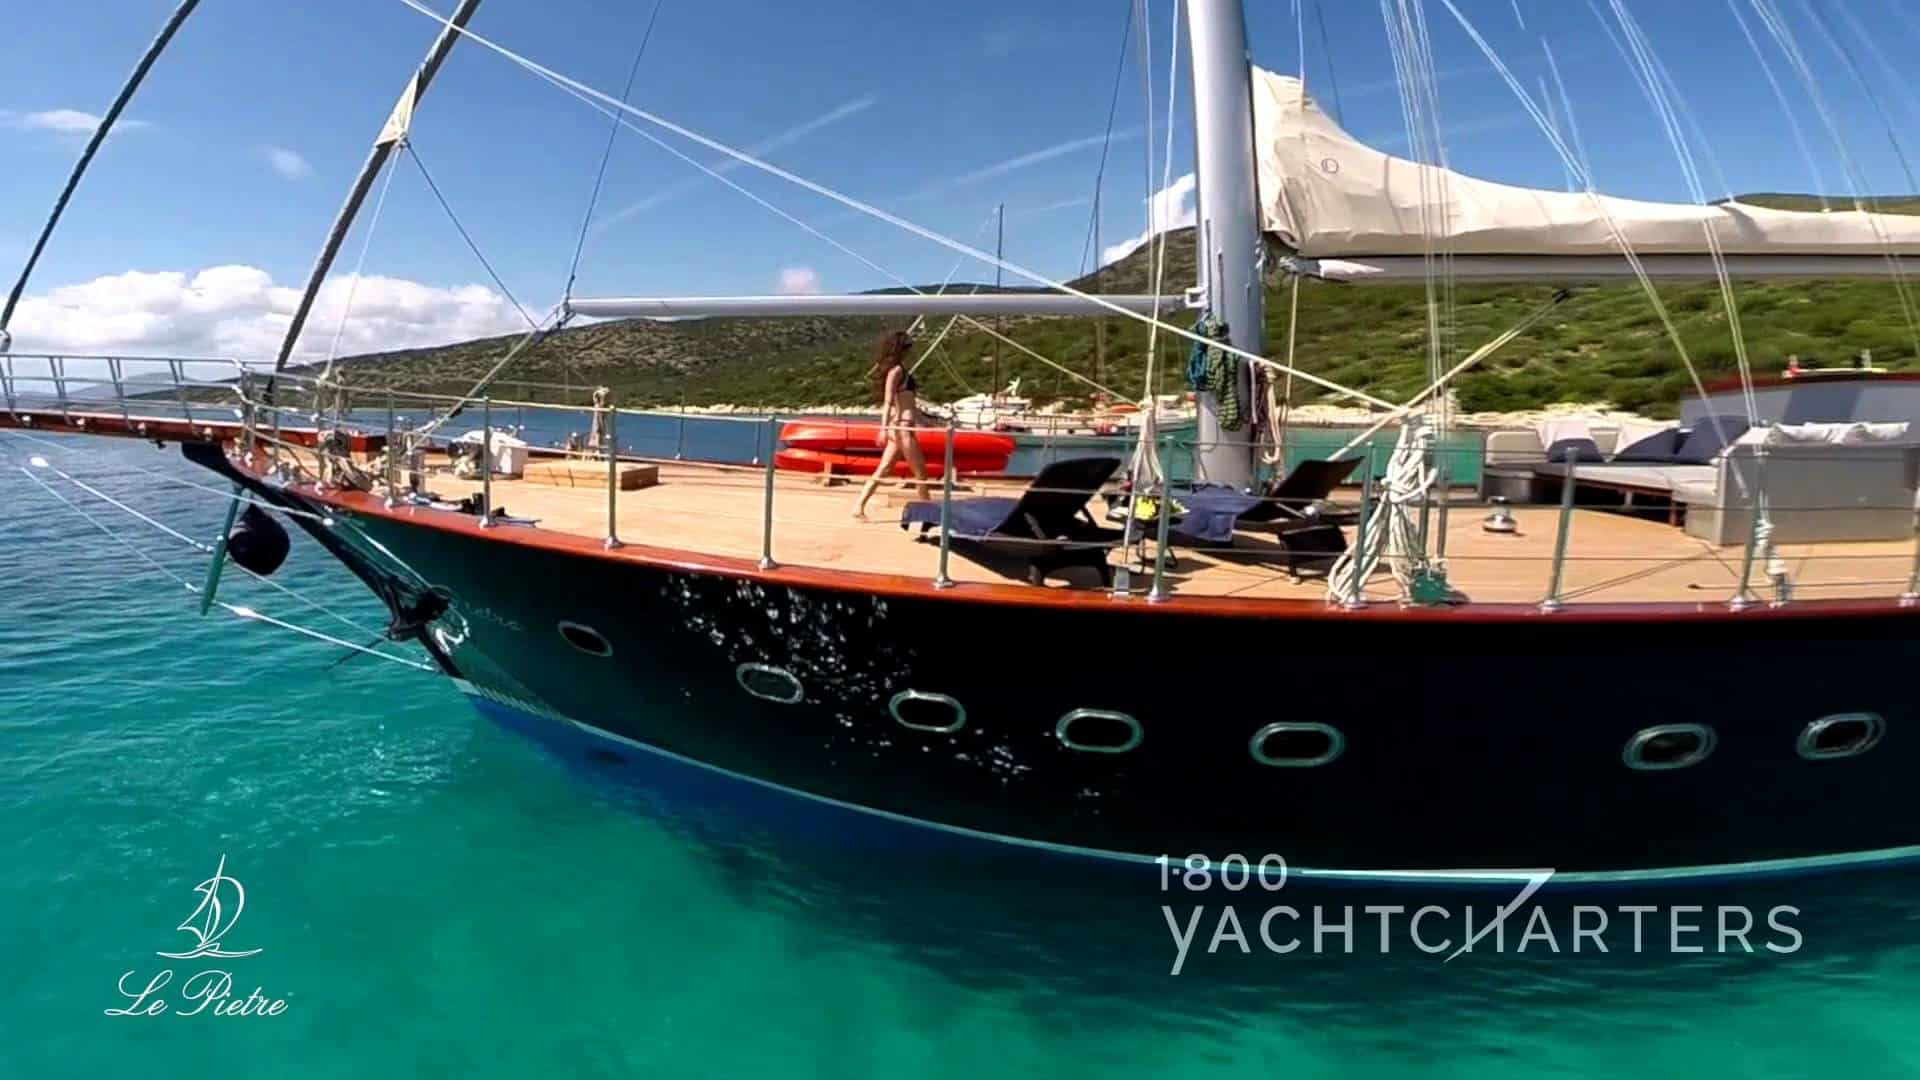 Sailboat Le Pietre yacht charter Turkey Bodrum